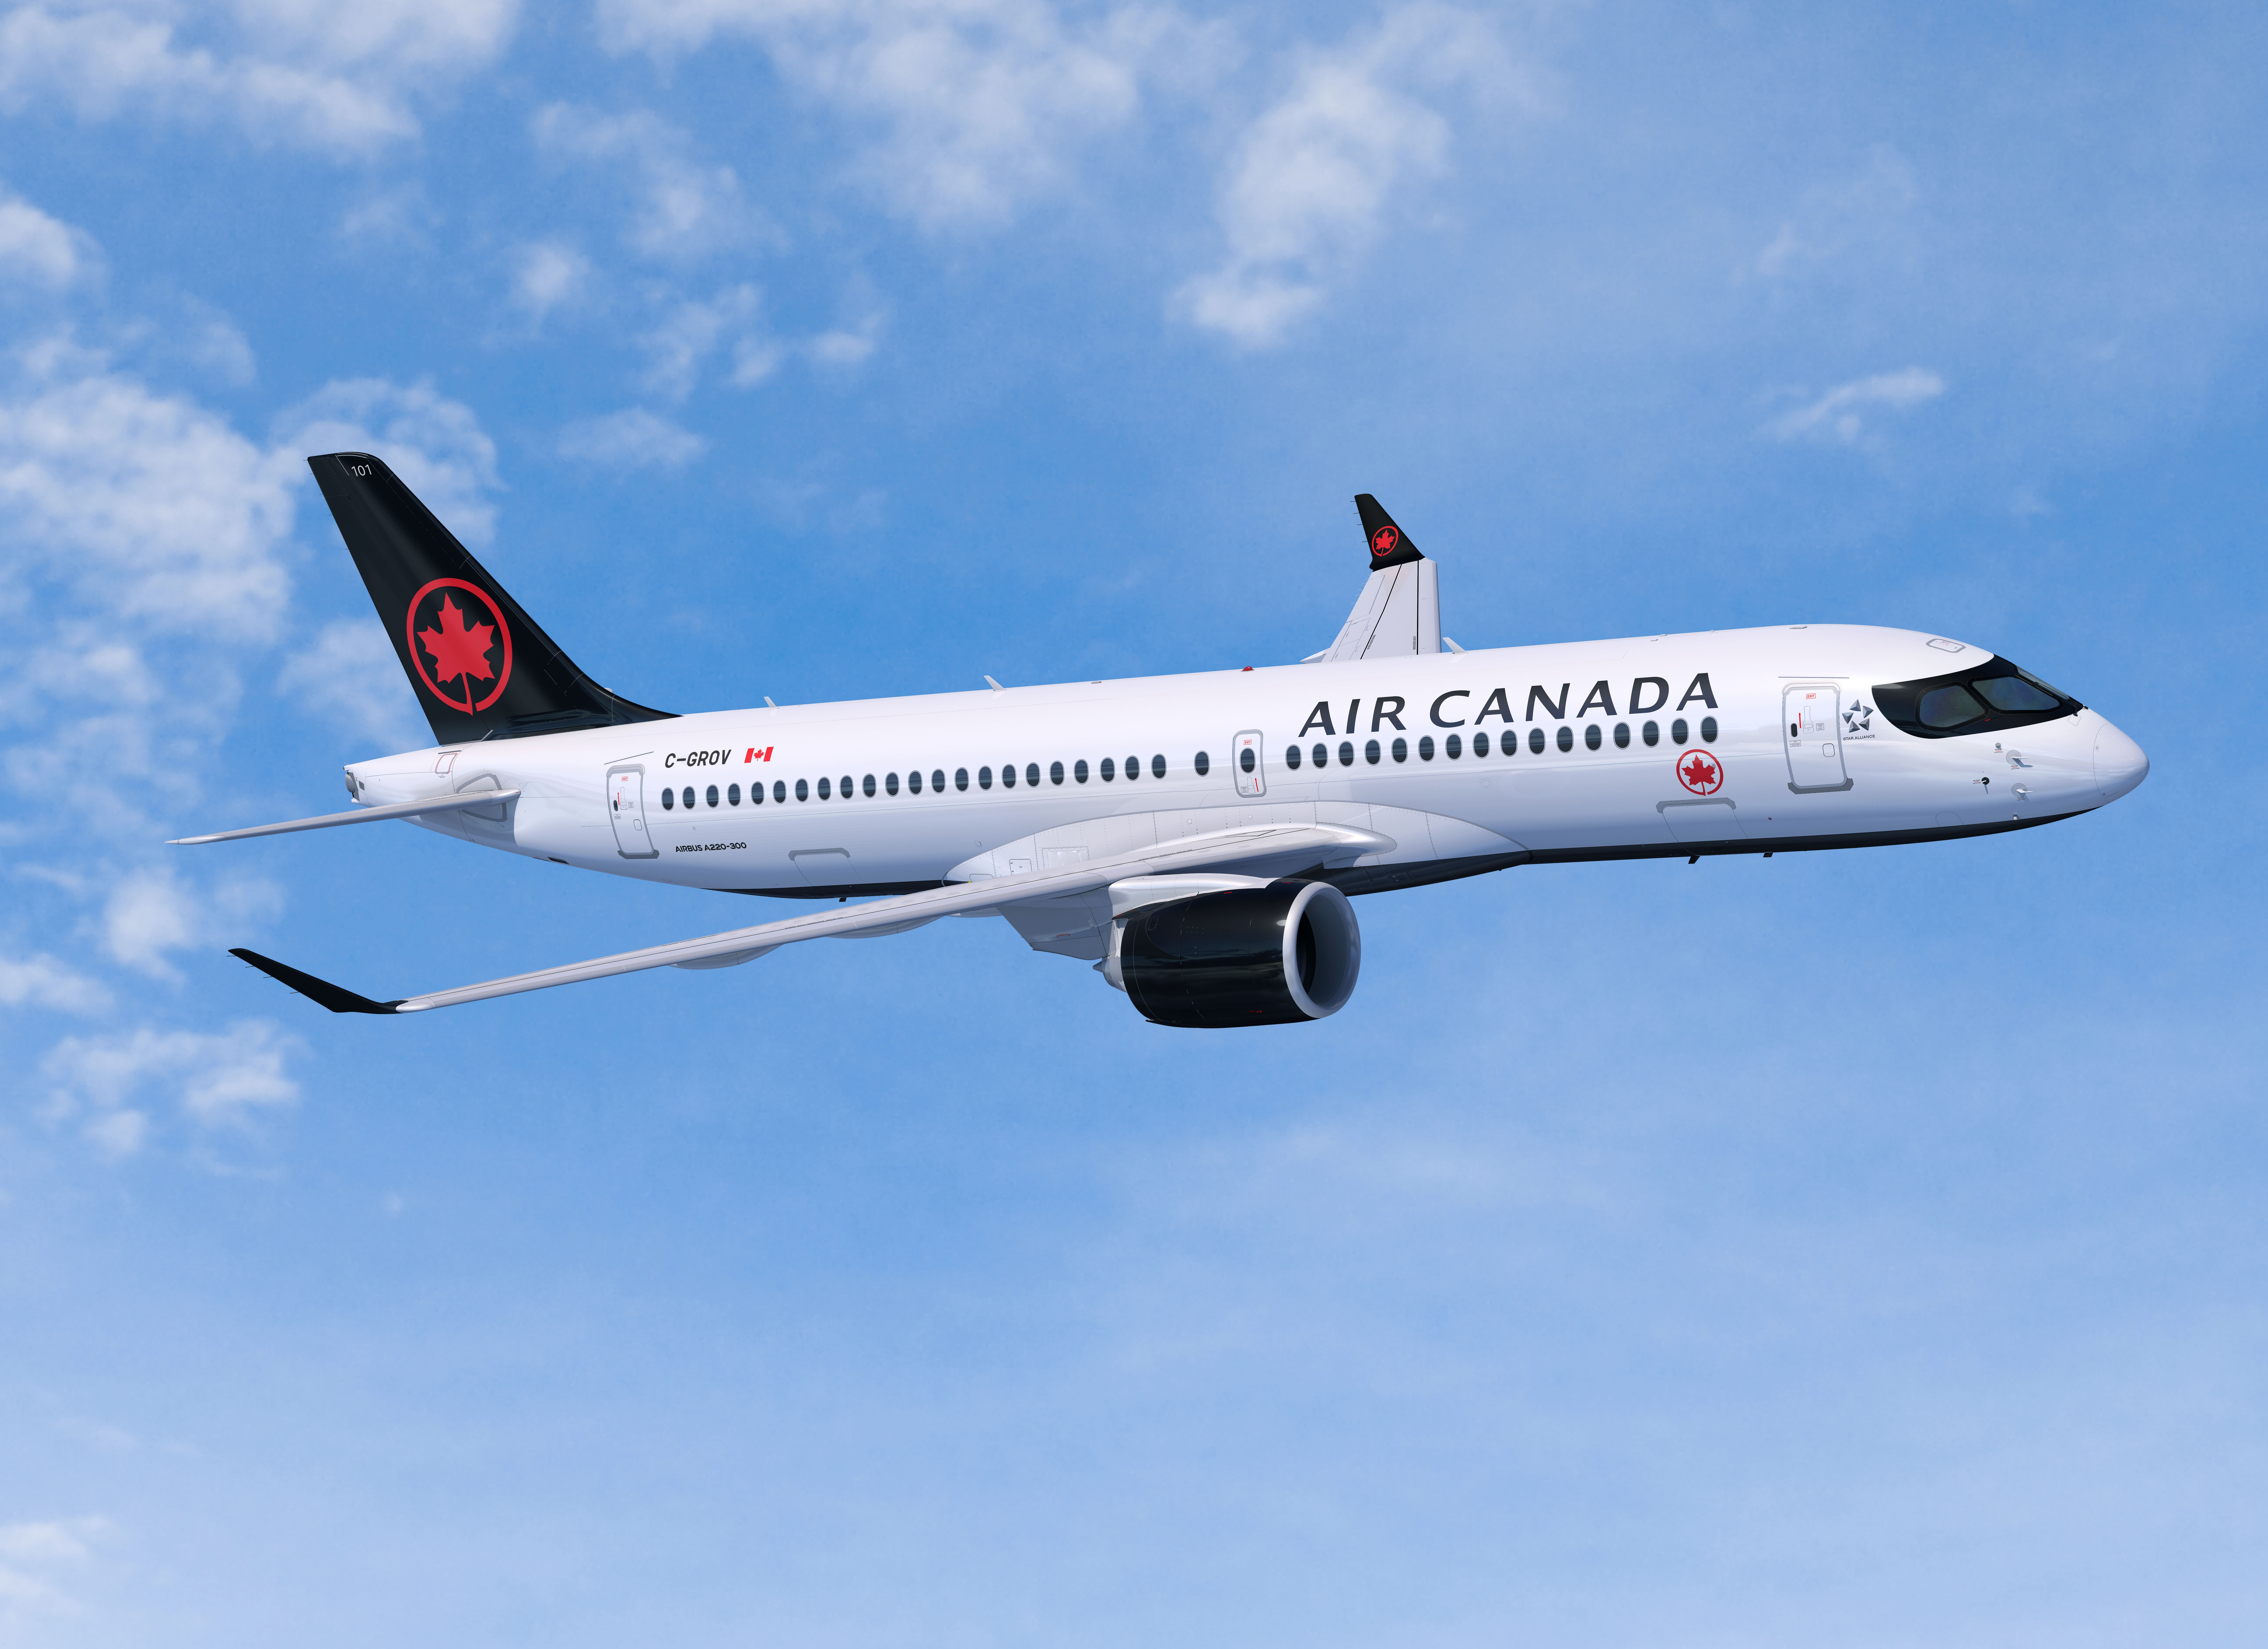 Air Canada to begin nonstop Toronto service from Silicon Valley's Airport